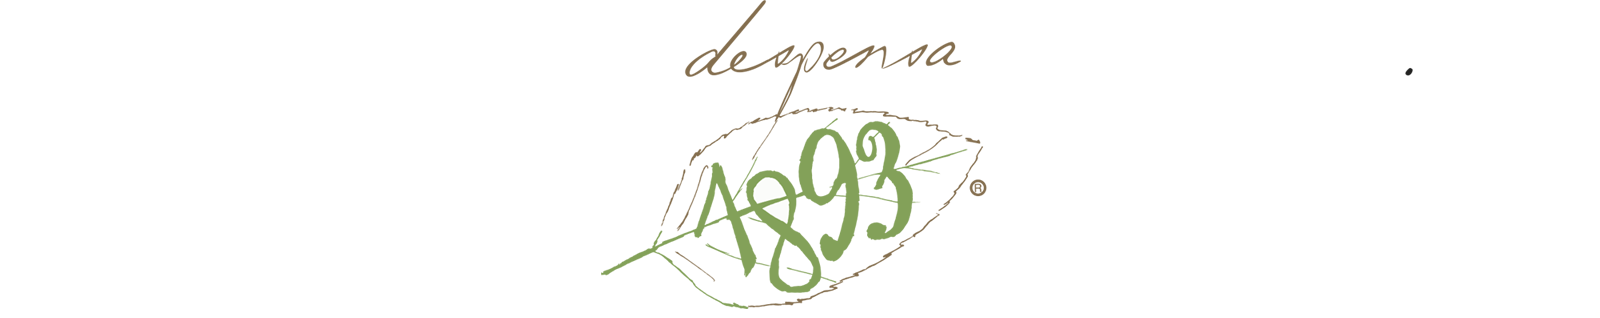 Despensa1893